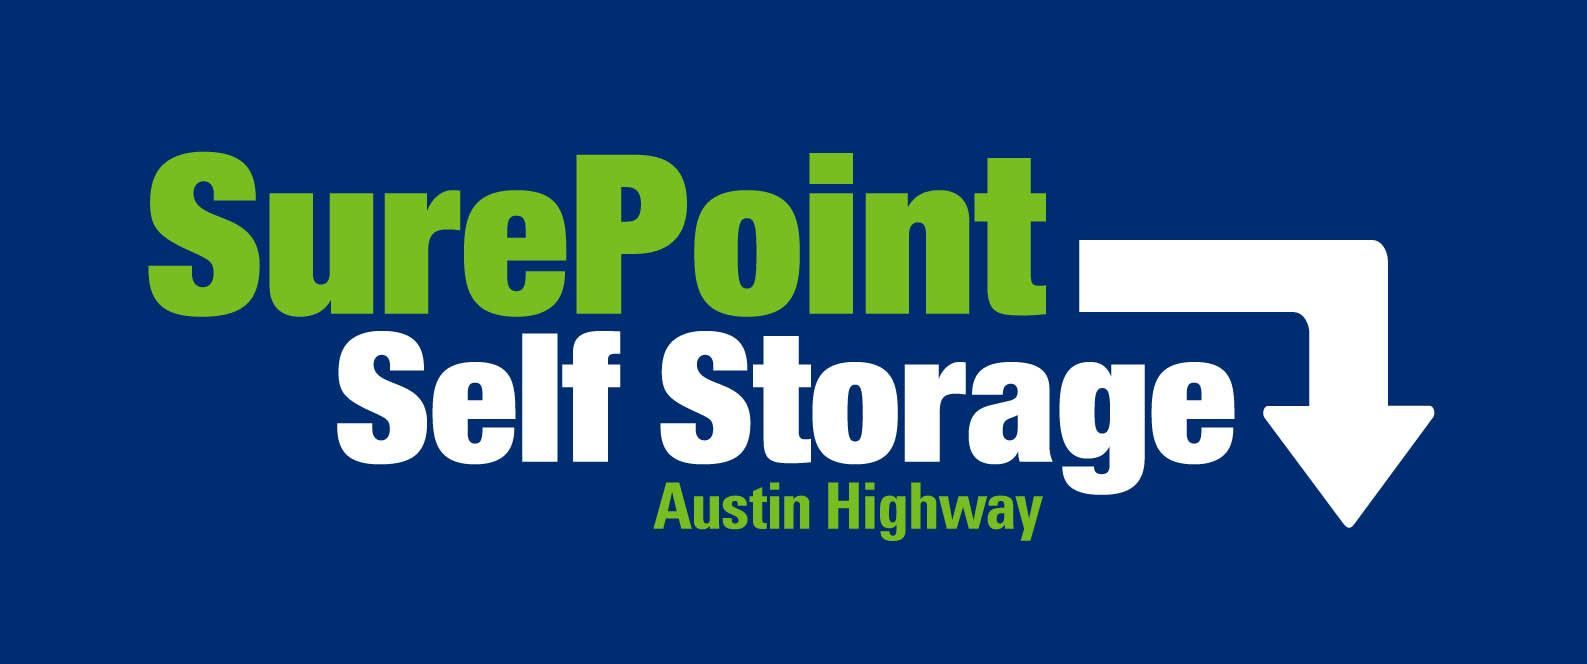 SurePoint Self Storage - Austin Highway